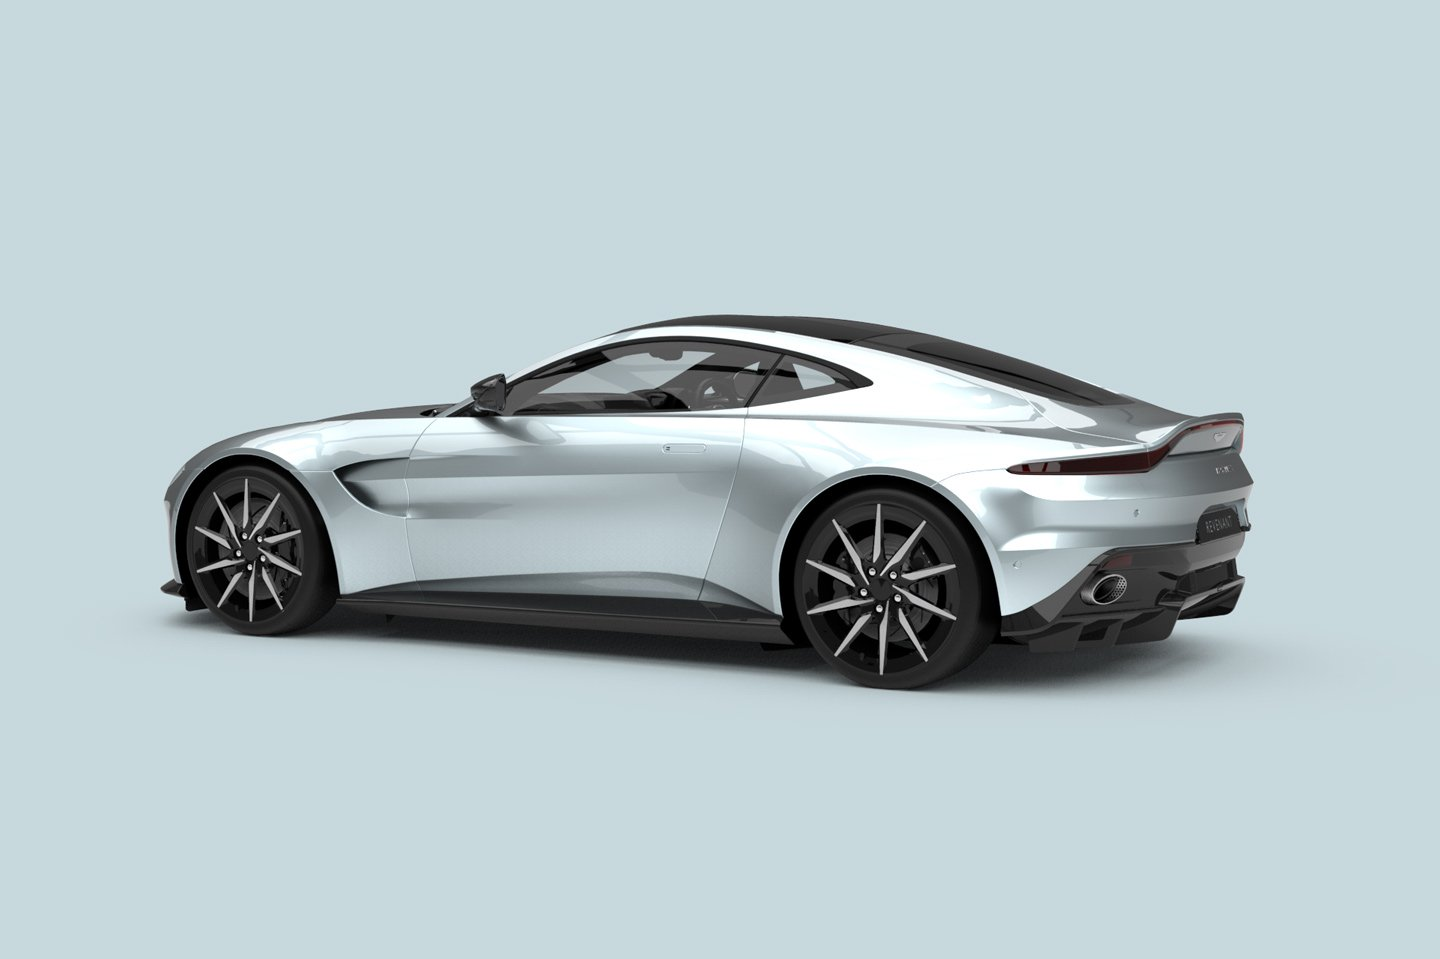 13aff60e-aston-martin-vantage-reinterpreted-by-revenant-automotive-4